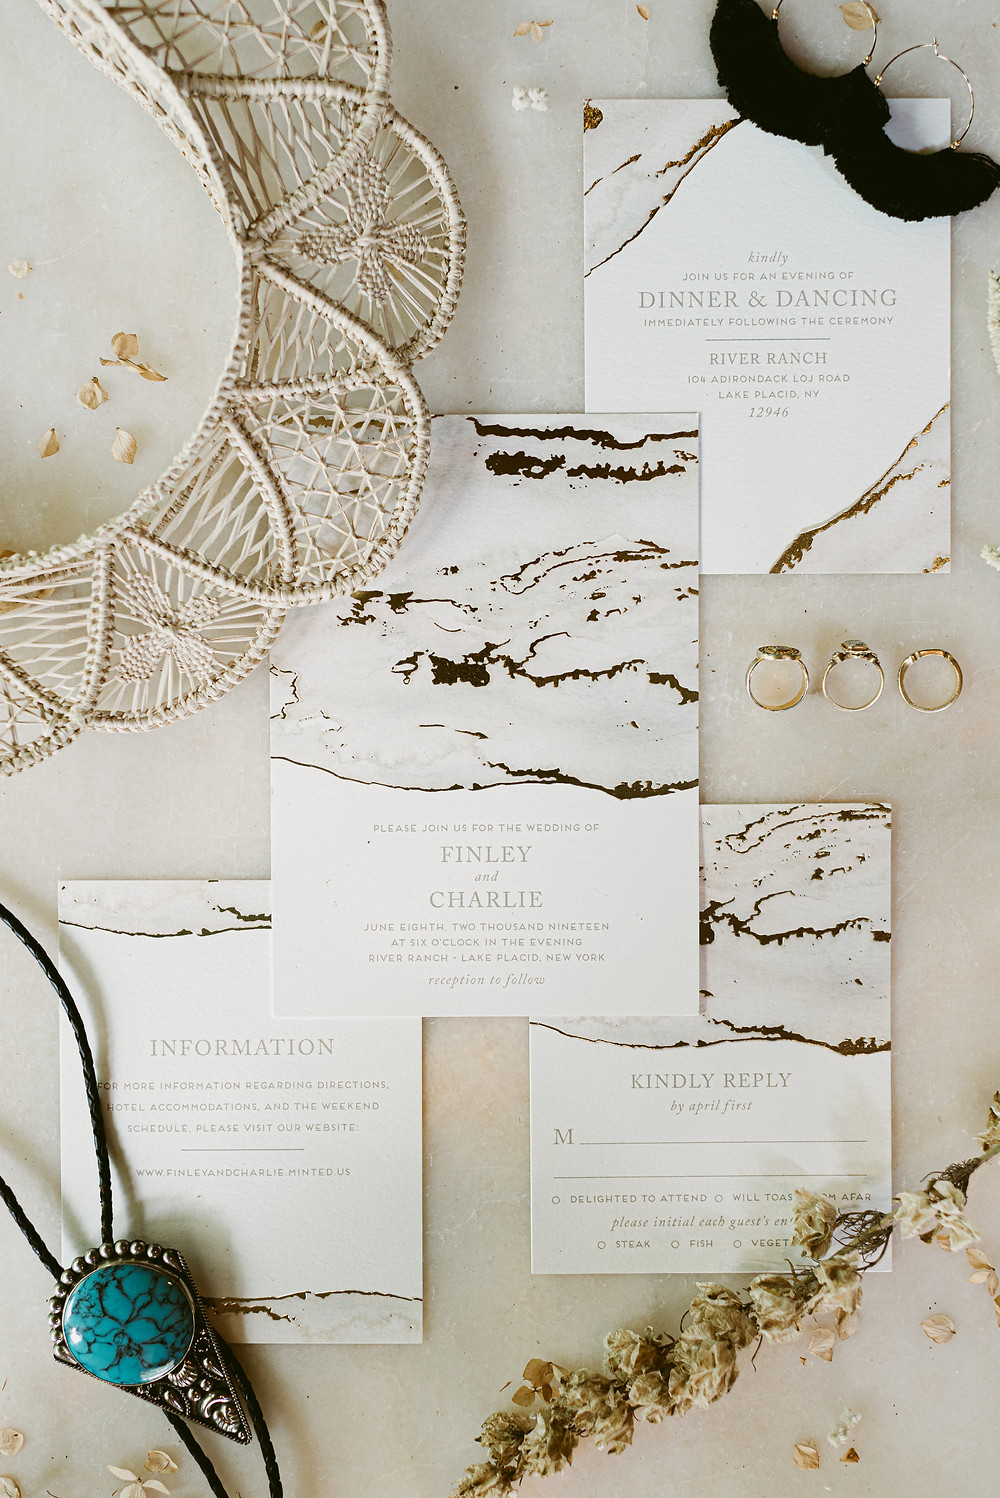 Neutral-toned wedding invitation and accessories at Lake Placid bohemian wedding